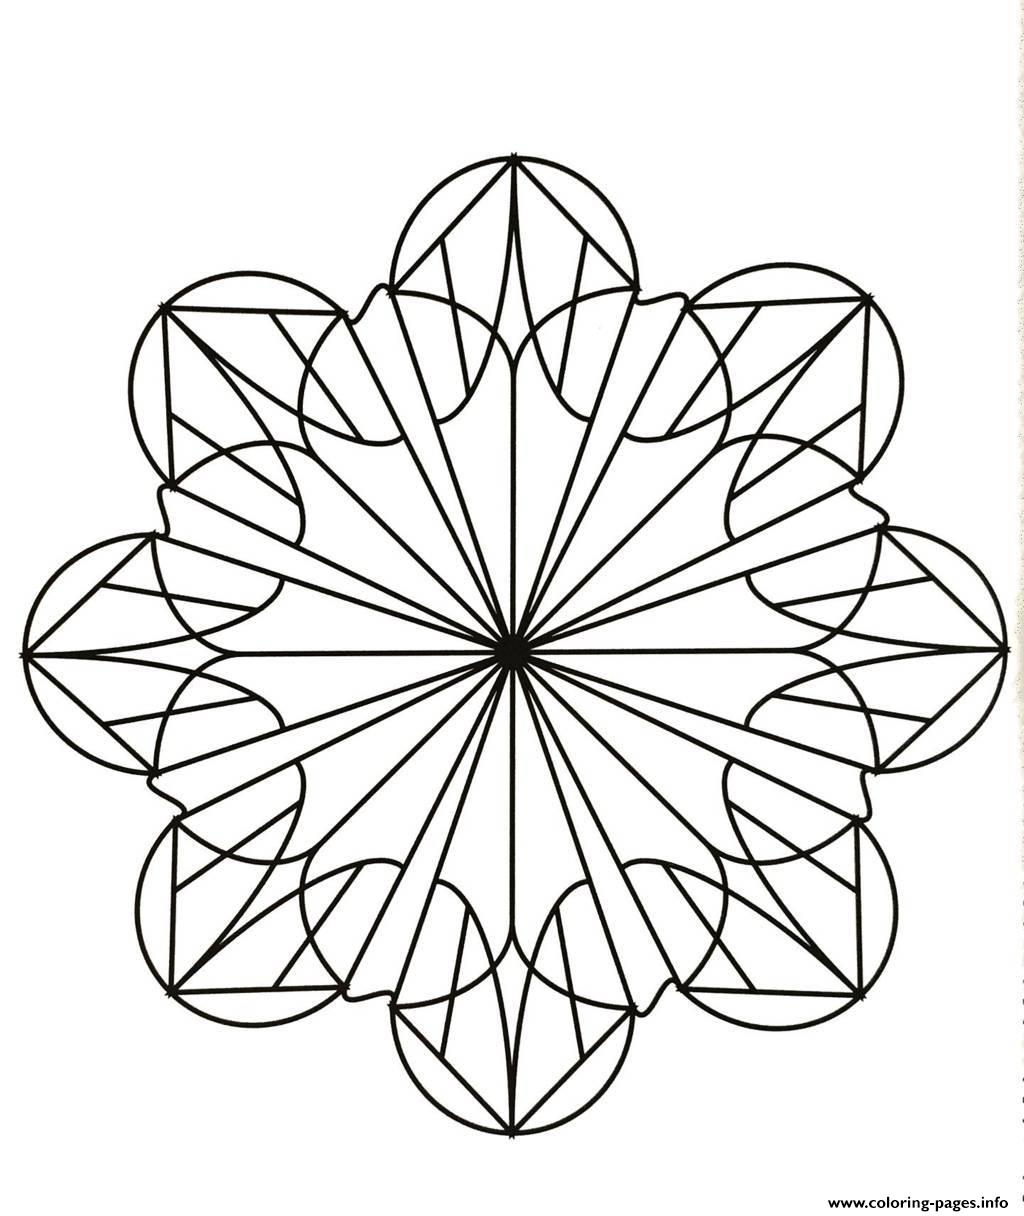 Mandalas To Download For Free 19  coloring pages